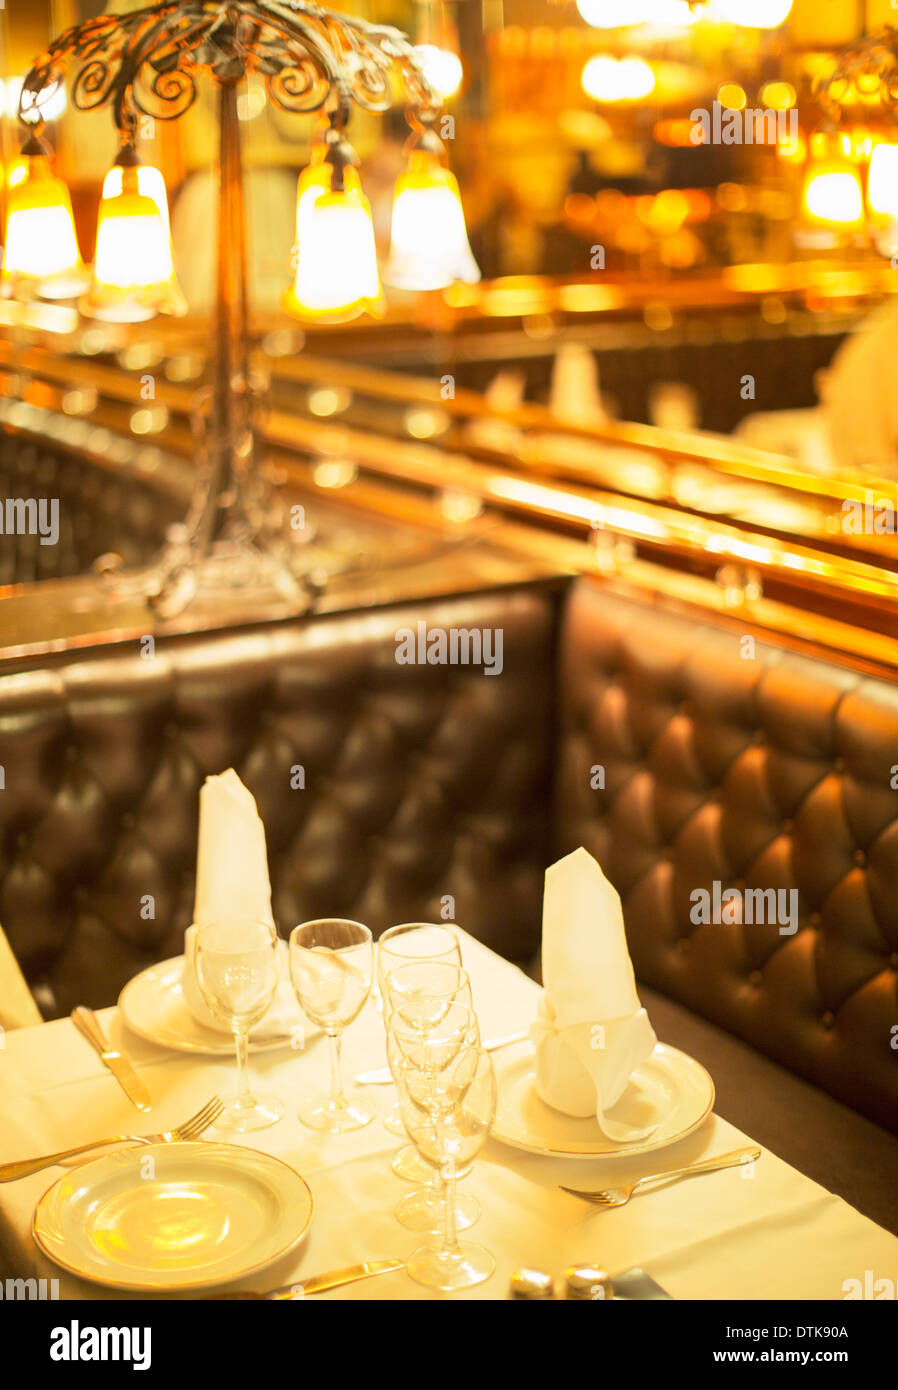 Set table in restaurant - Stock Image